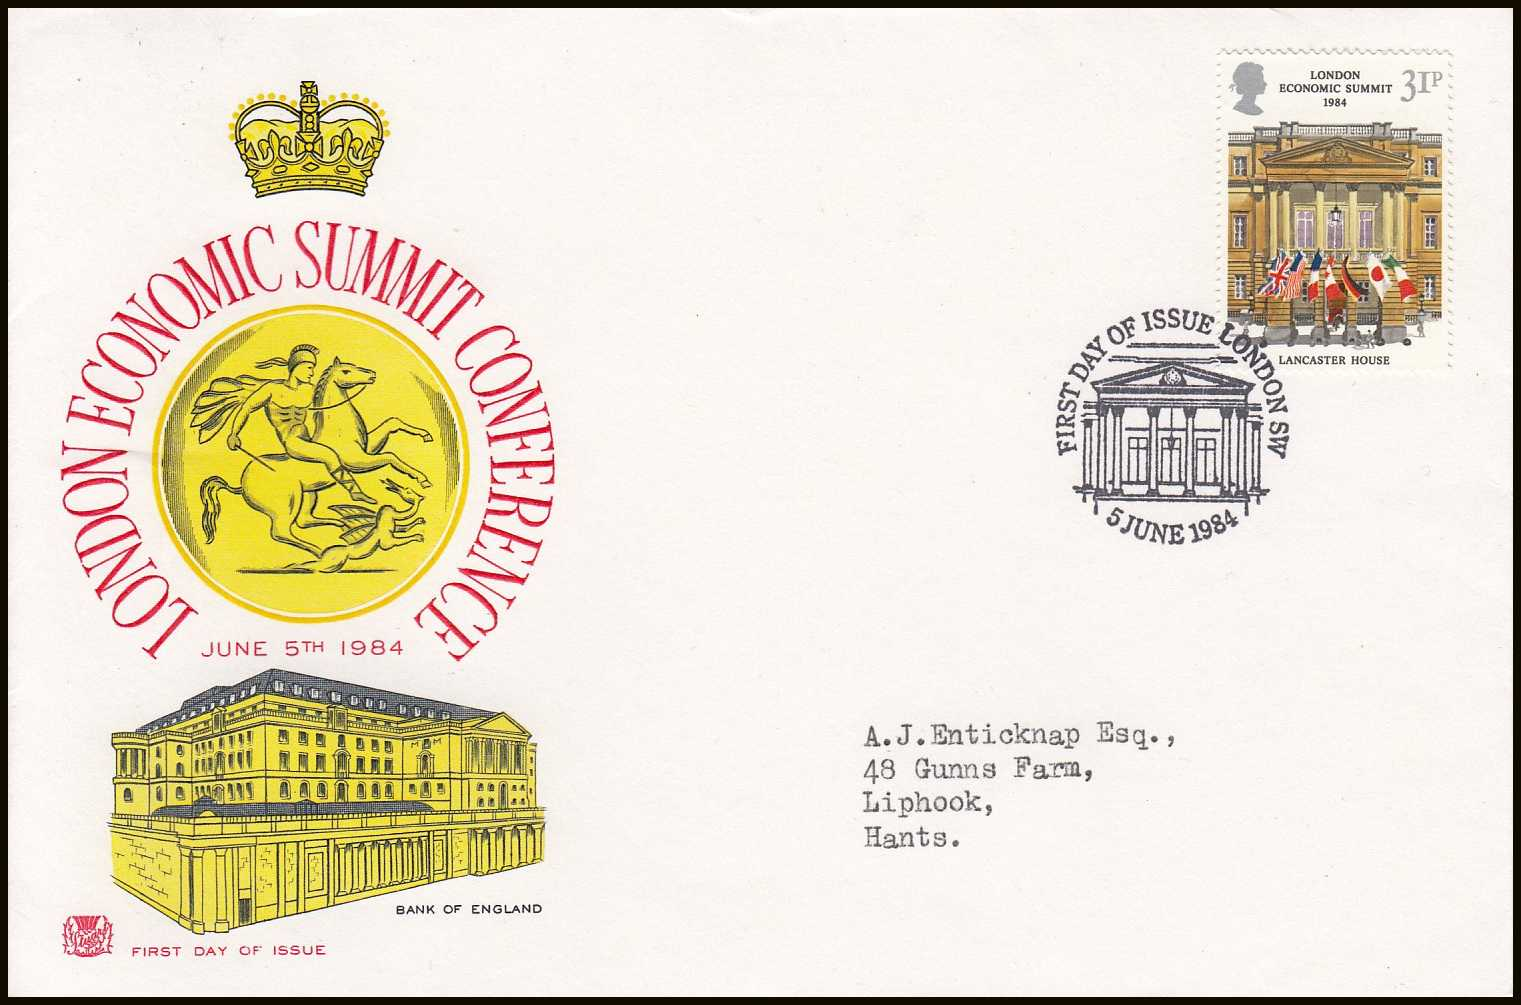 --- - London Economic Summit Conference, June 5th, 1984. Royal Mail Special Commemorative Issue First Day Cover. Franked London, First Day of Issue. 5th June 1984.